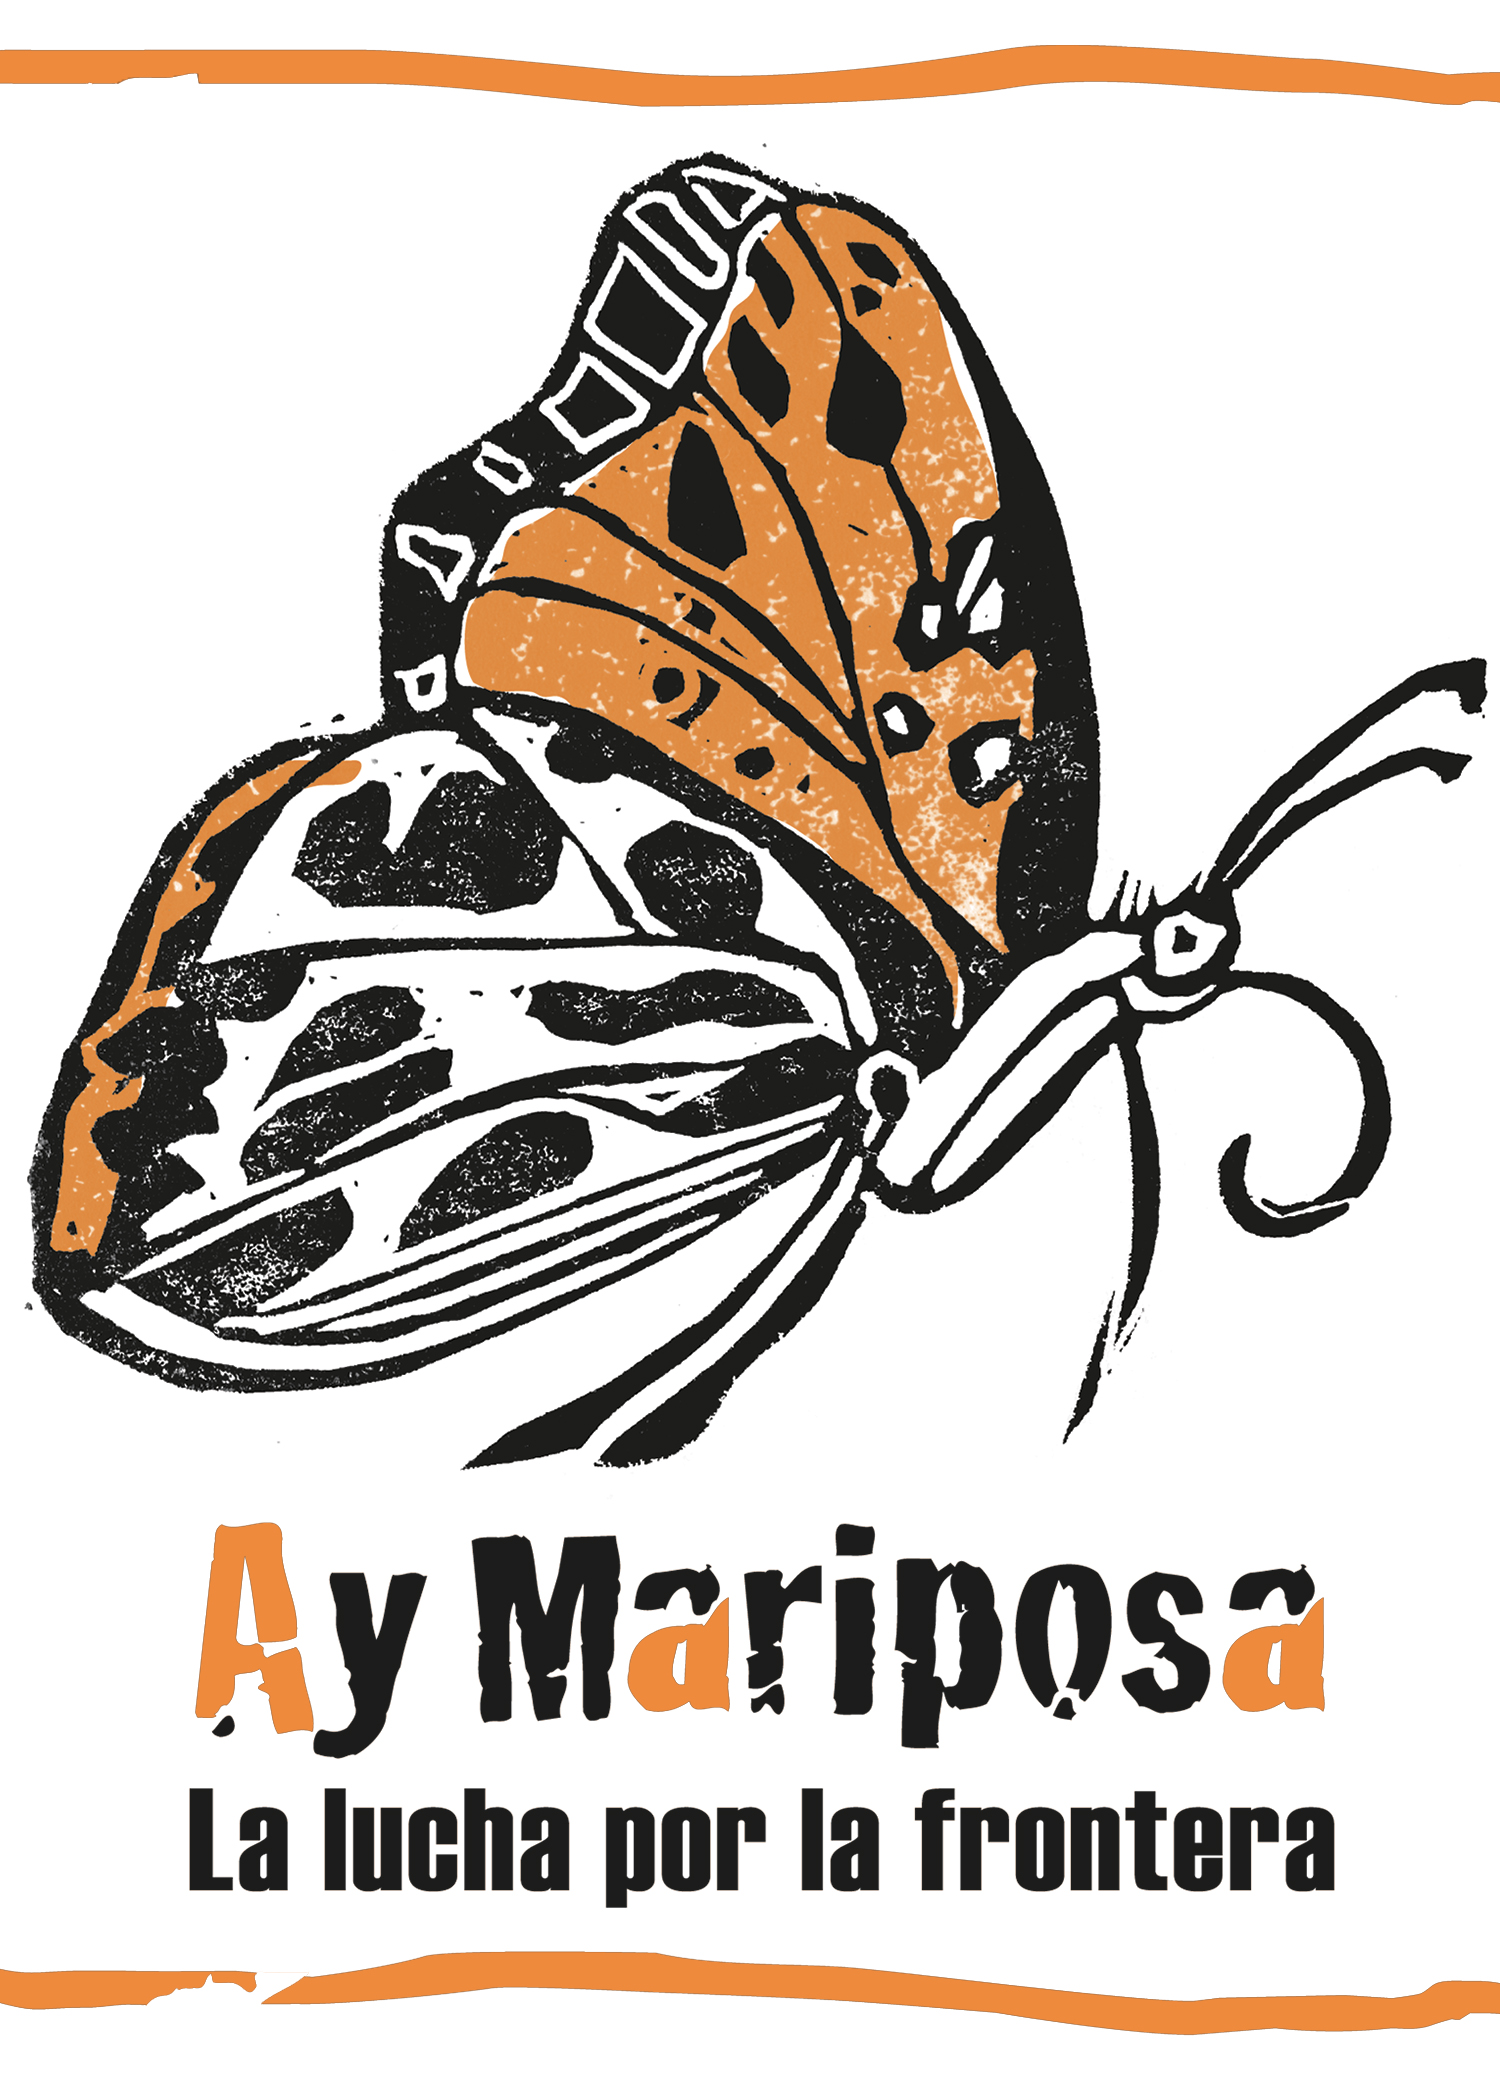 - We have created special Ay Mariposa cards that you can download for free, along with three pre-addressed labels for key members of Congress who play important roles in border wall funding:Senator Chuck Schumer, the Senate minority leader;Rep. Nancy Pelosi, the House Speaker; and,Senator Chris Van Hollen, who plays a lead role in crafting the budget that funds border wall.All three of these members are Democrats, and all three have consistently supported border wall funding.If you want to send a postcard or letter to your own member of Congress, you can find their addresses here.